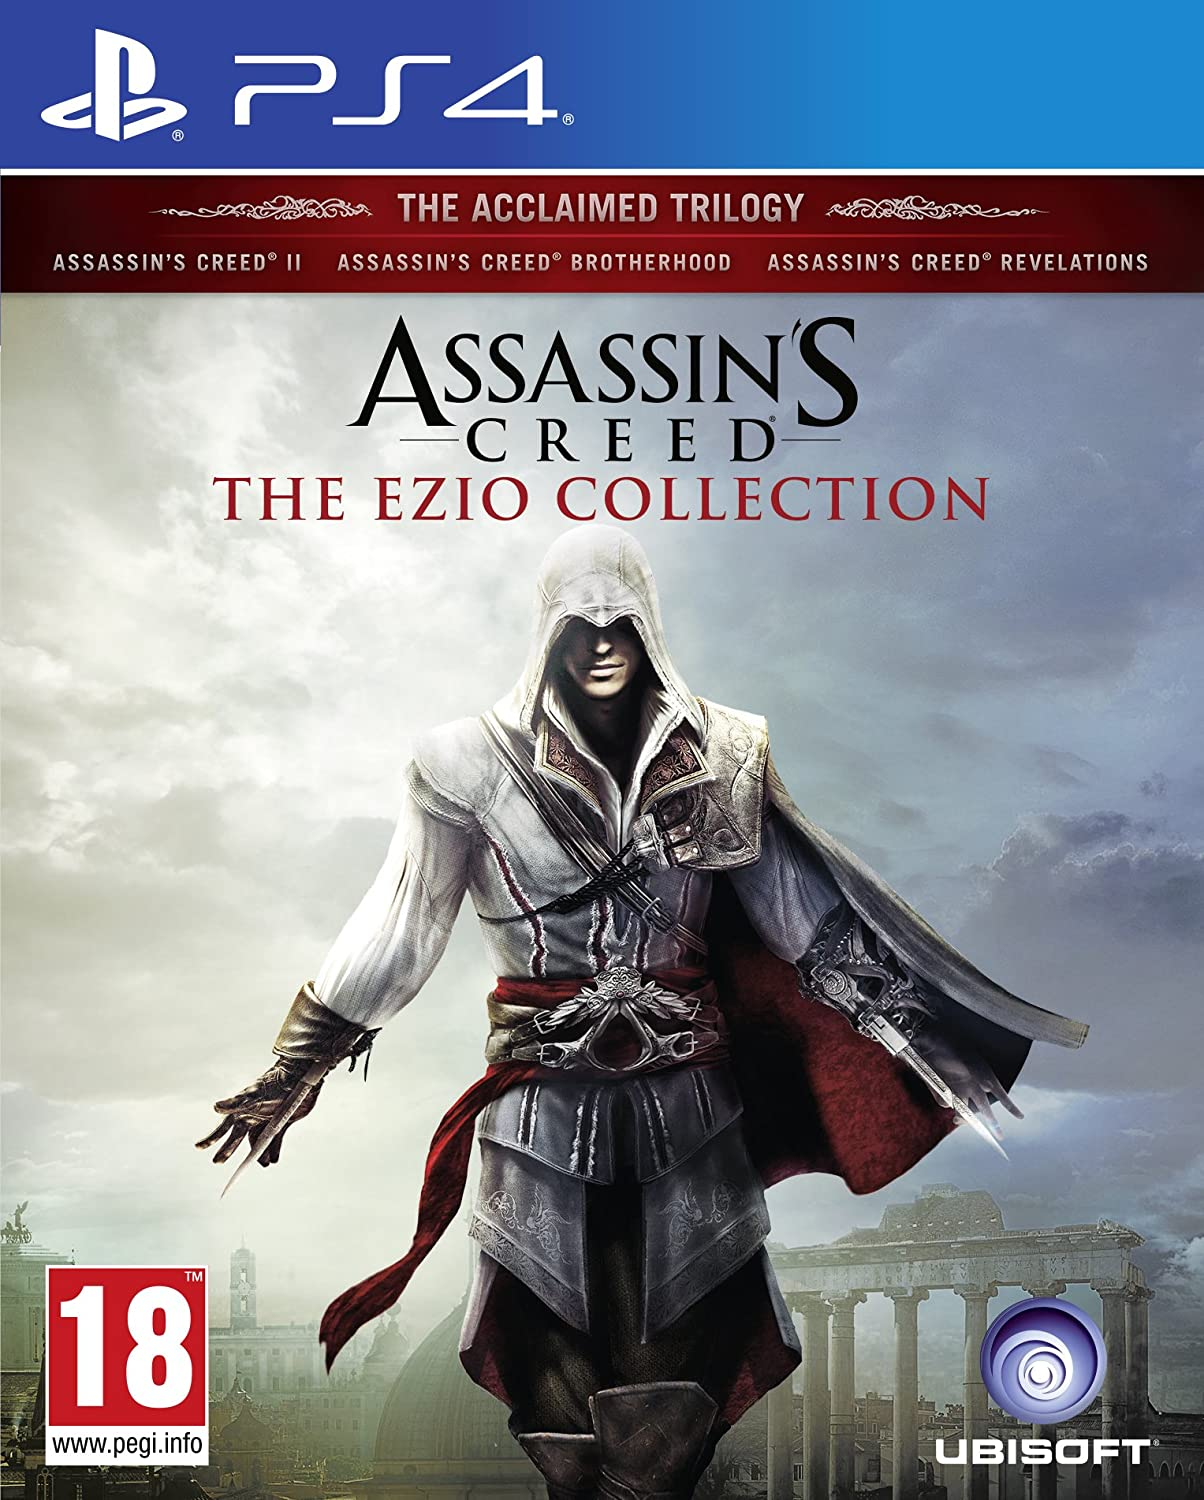 Assassins Brand new Creed The Collection PS4 Limited time sale Ezio